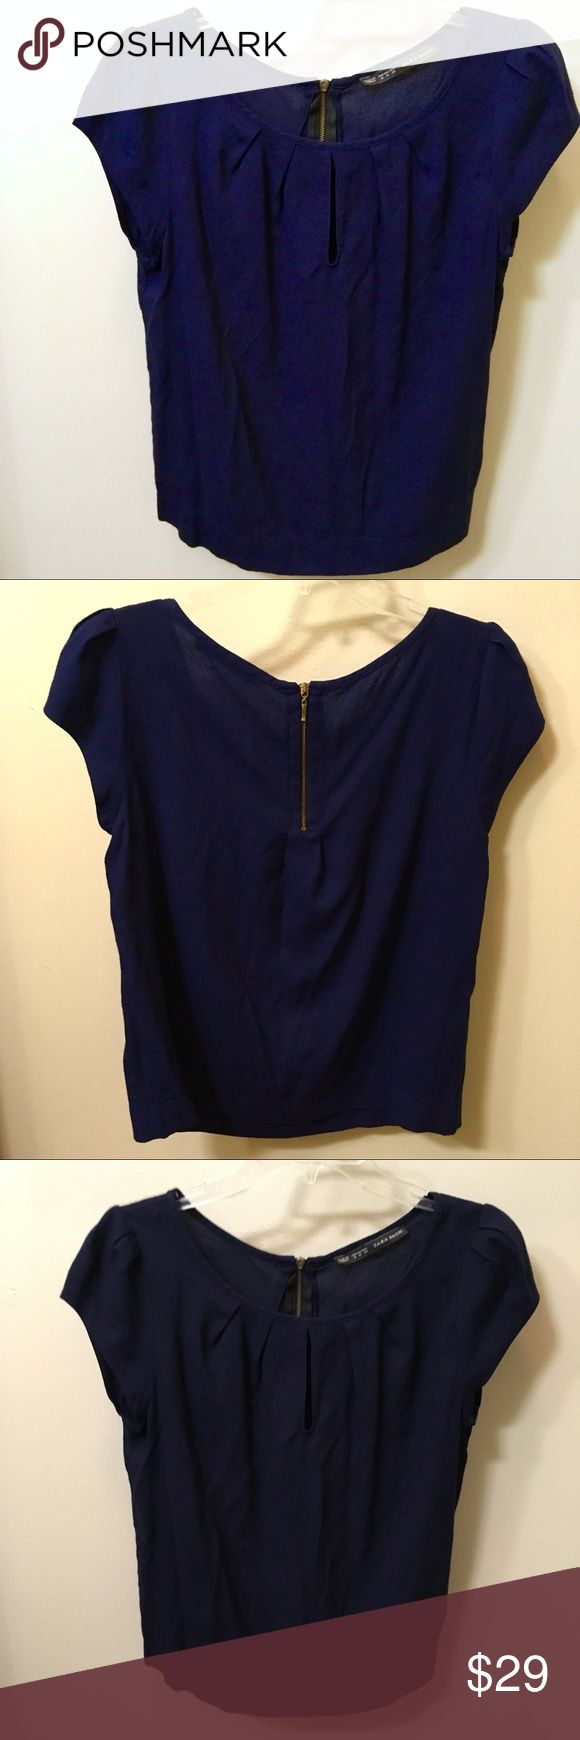 Zara Basic SS Navy Blue Blouse Zip-Up Back (M) Zara Basic Short Sleeve Navy Blue Blouse W/Zip Up Back. Beautiful Pleated Front w/Keyhole Design! Size (M). Very Lovely Blouse! Perfect Condition. [Worn/Washed Once for a couple hours - was not my size] Like New! Zara Tops Blouses